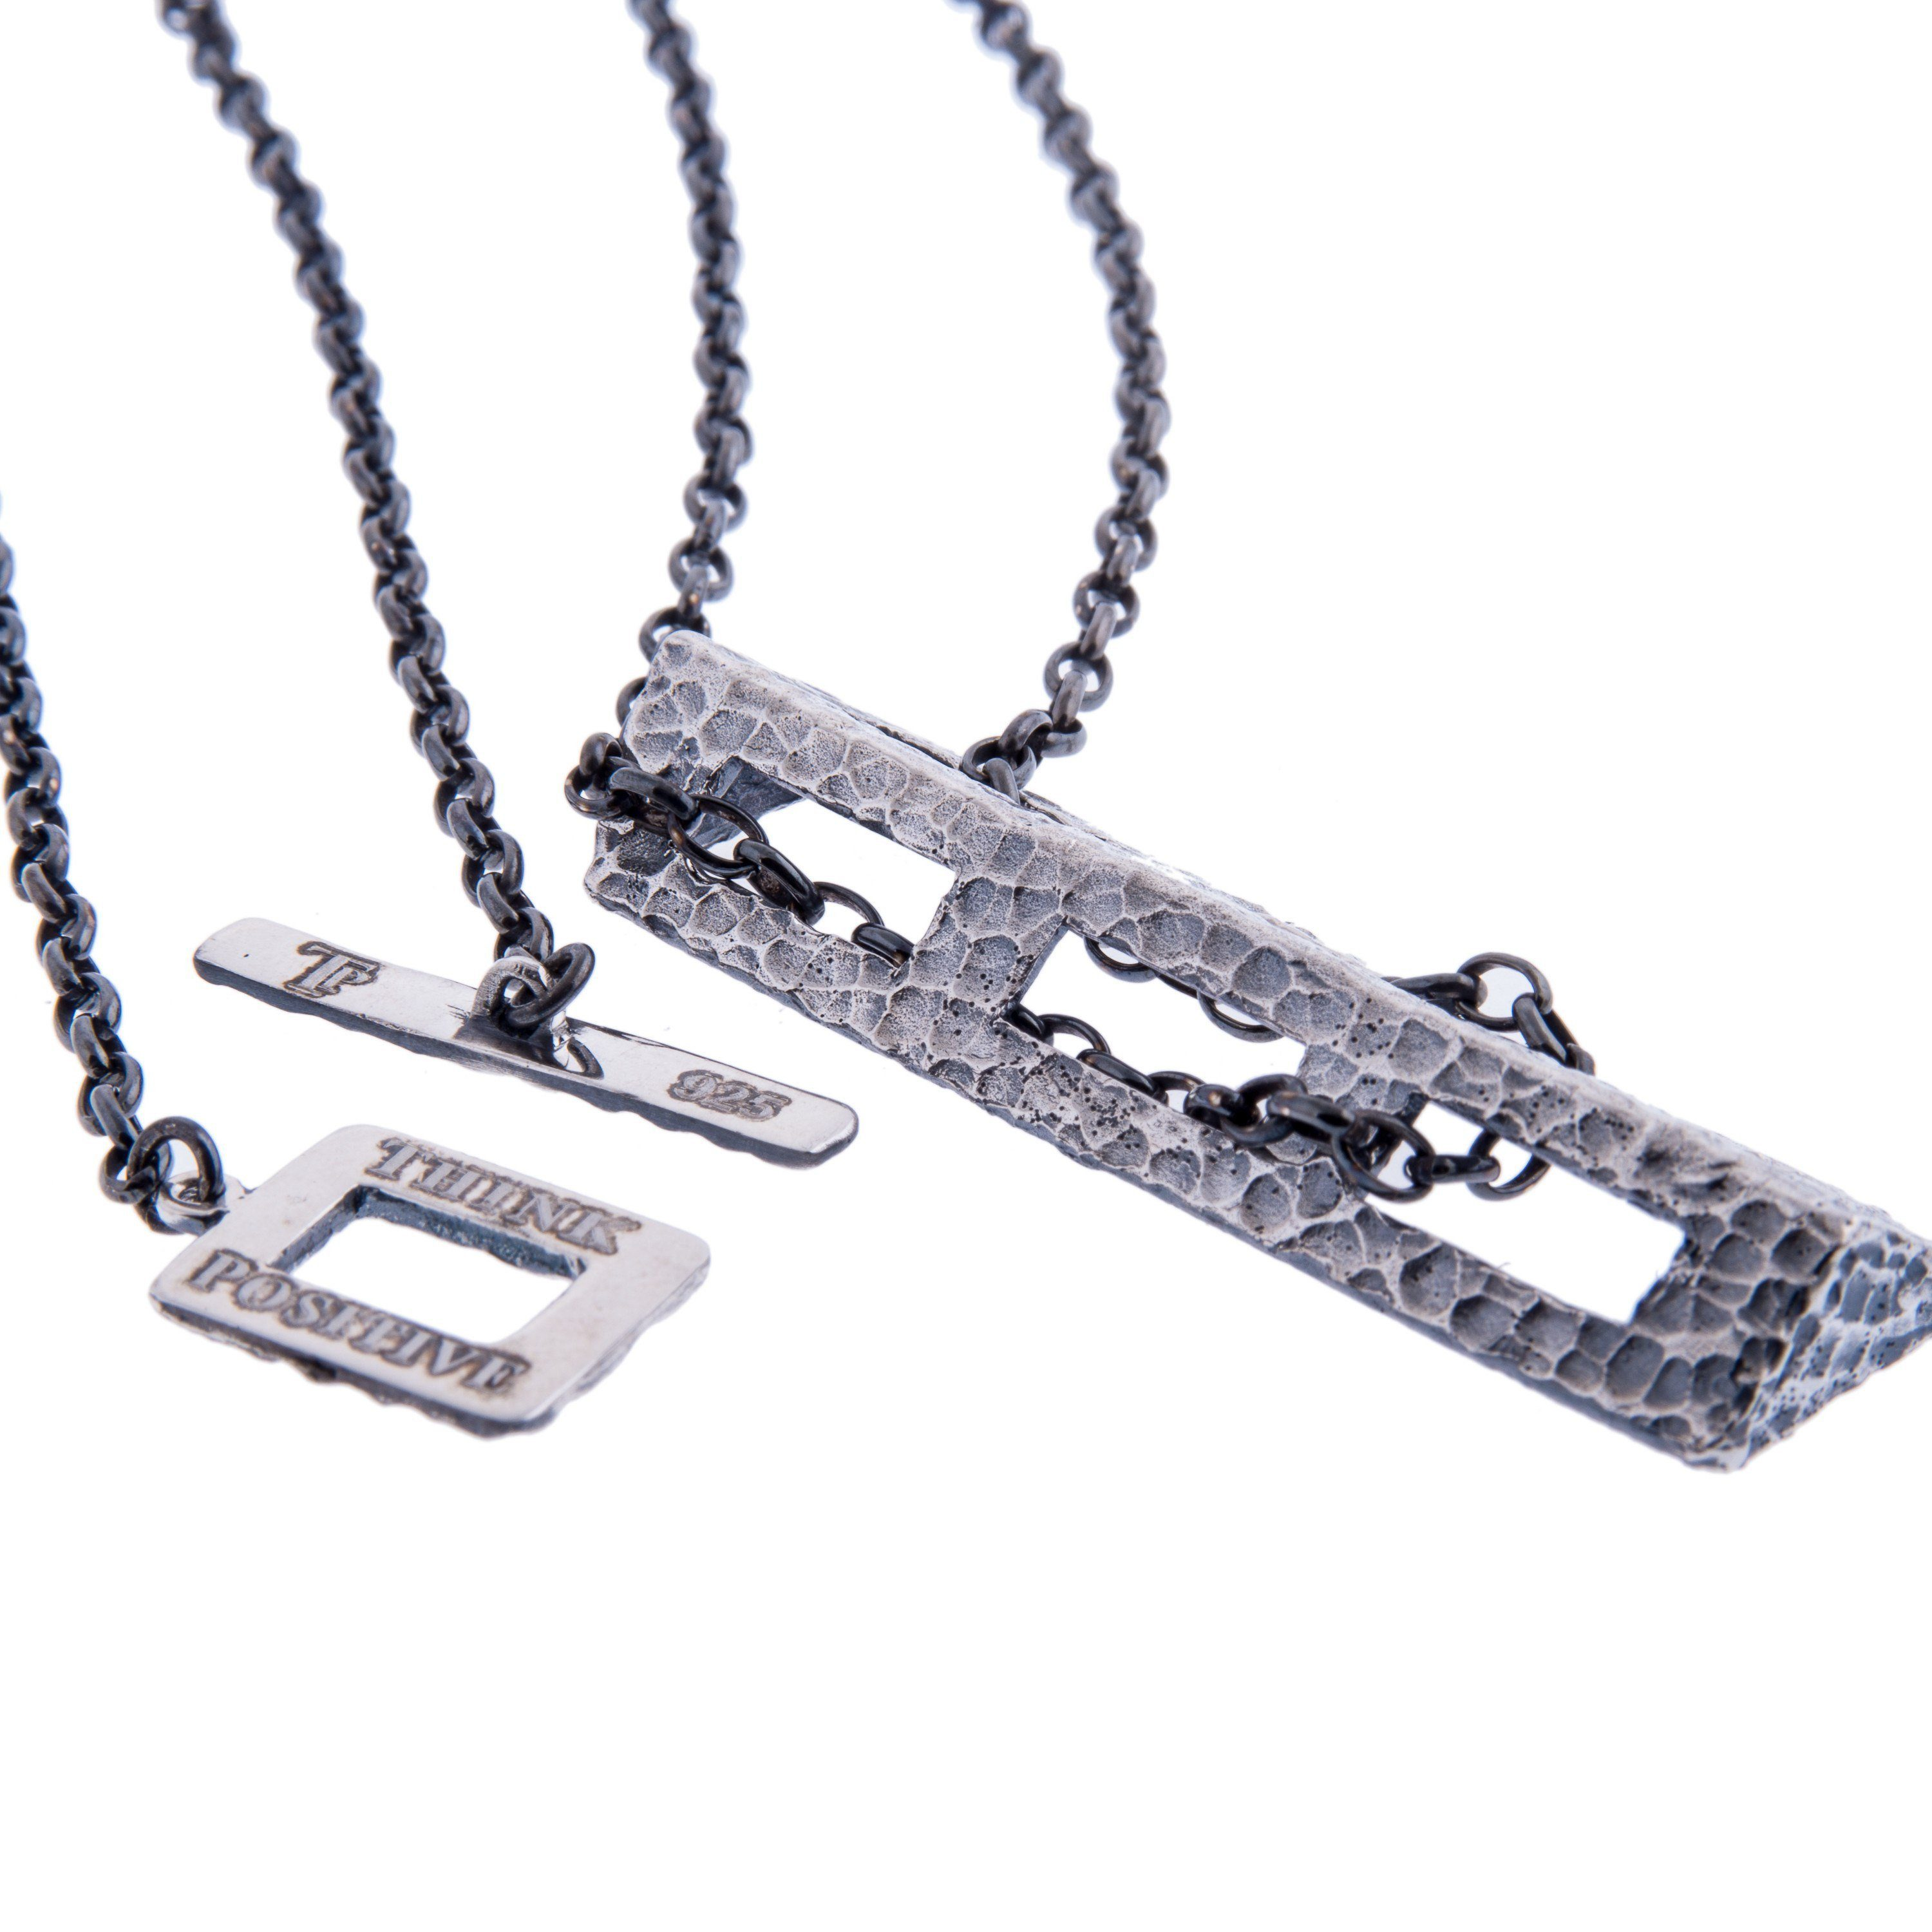 Hammered silver chain pendant men necklace sterling silver mens necklaces hammered silver chain pendant men necklace mozeypictures Choice Image